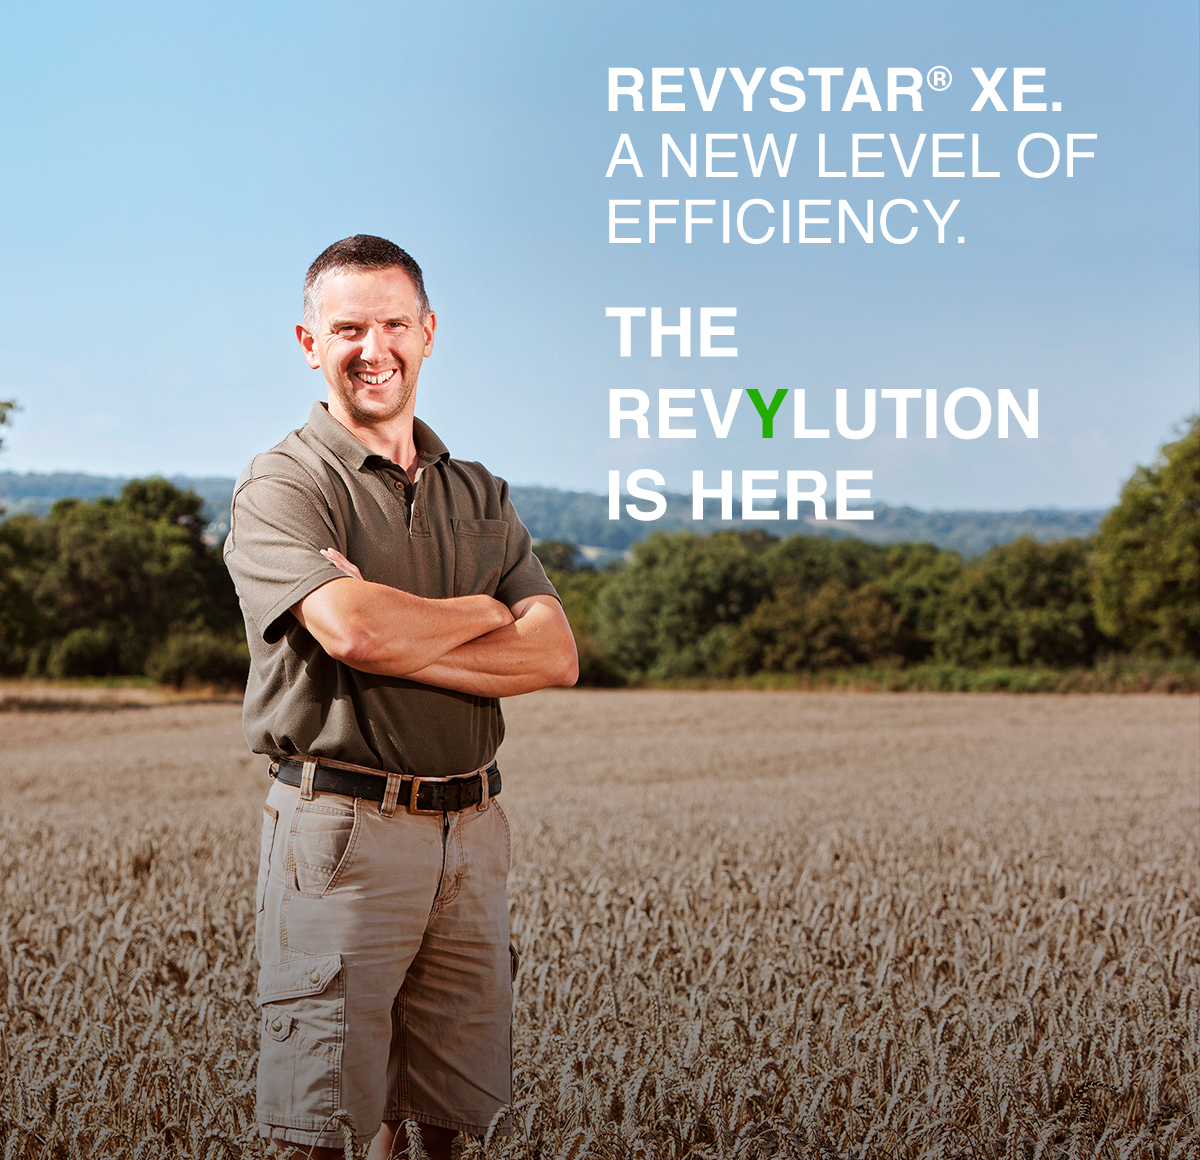 Revystar XE. A new level of efficiency. The Revylution is here